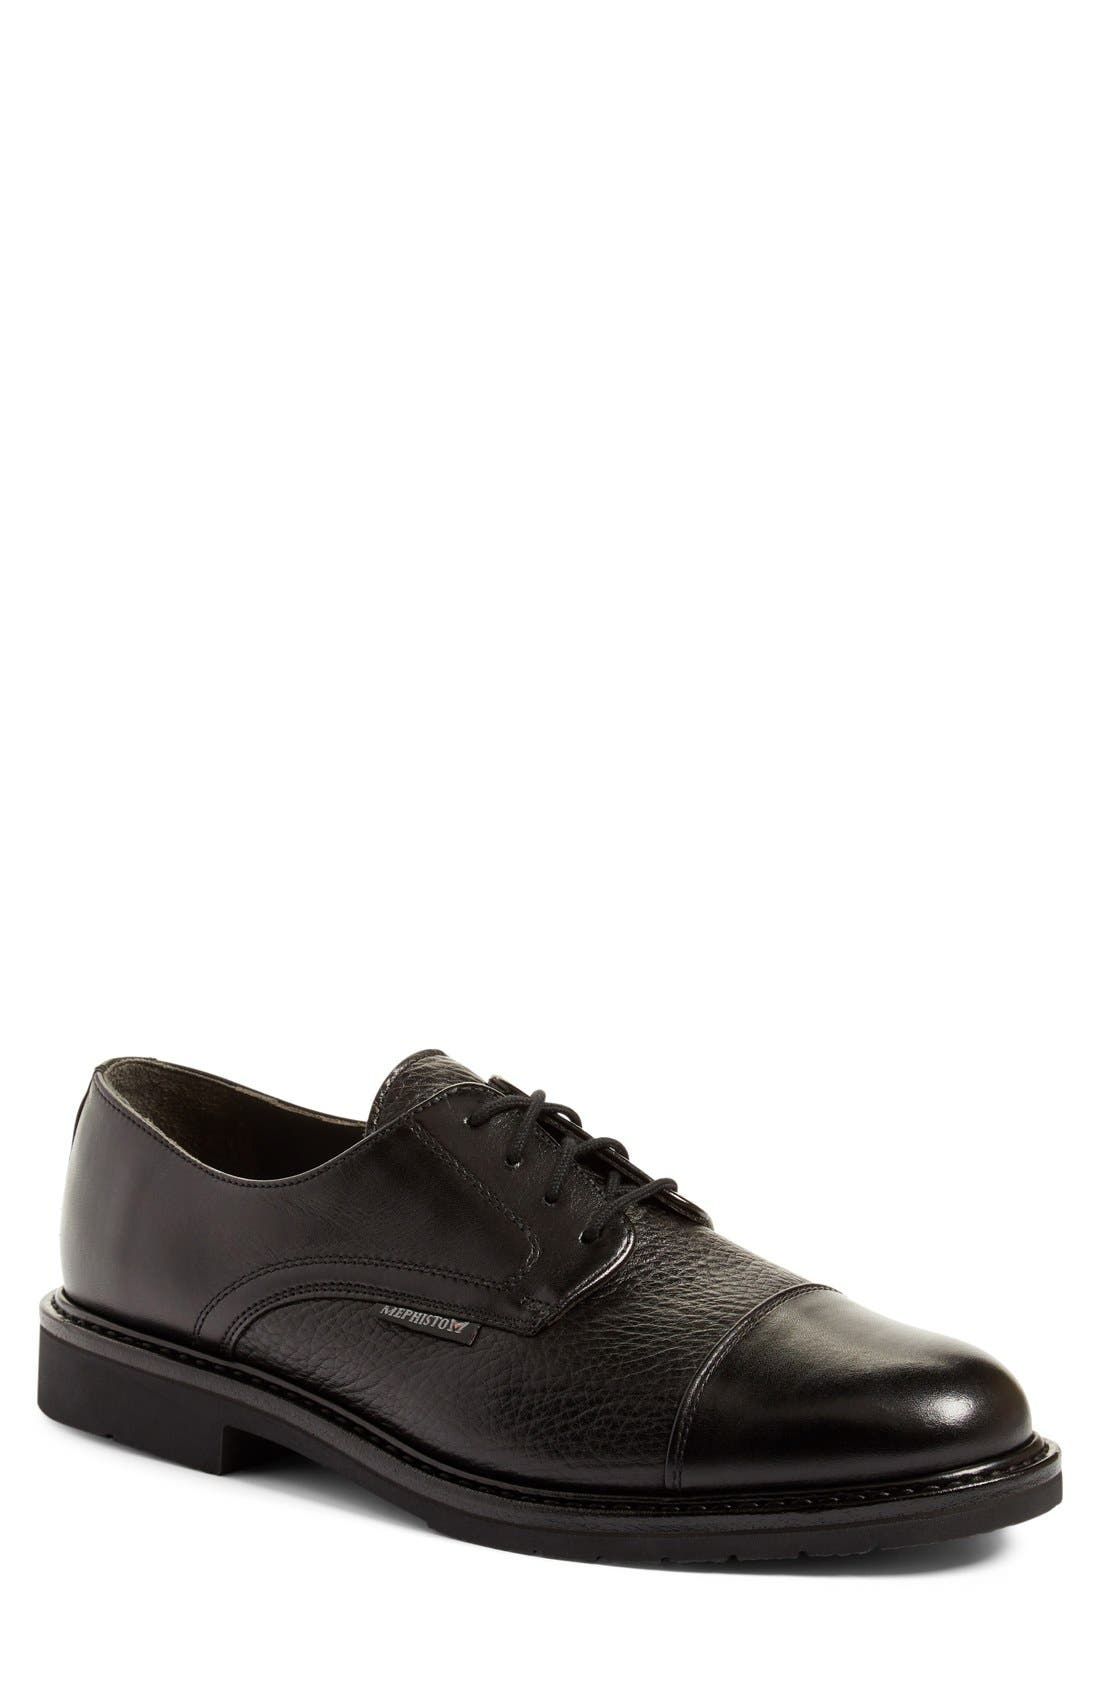 Alternate Image 1 Selected - Mephisto 'Melchior' Cap Toe Derby (Men)